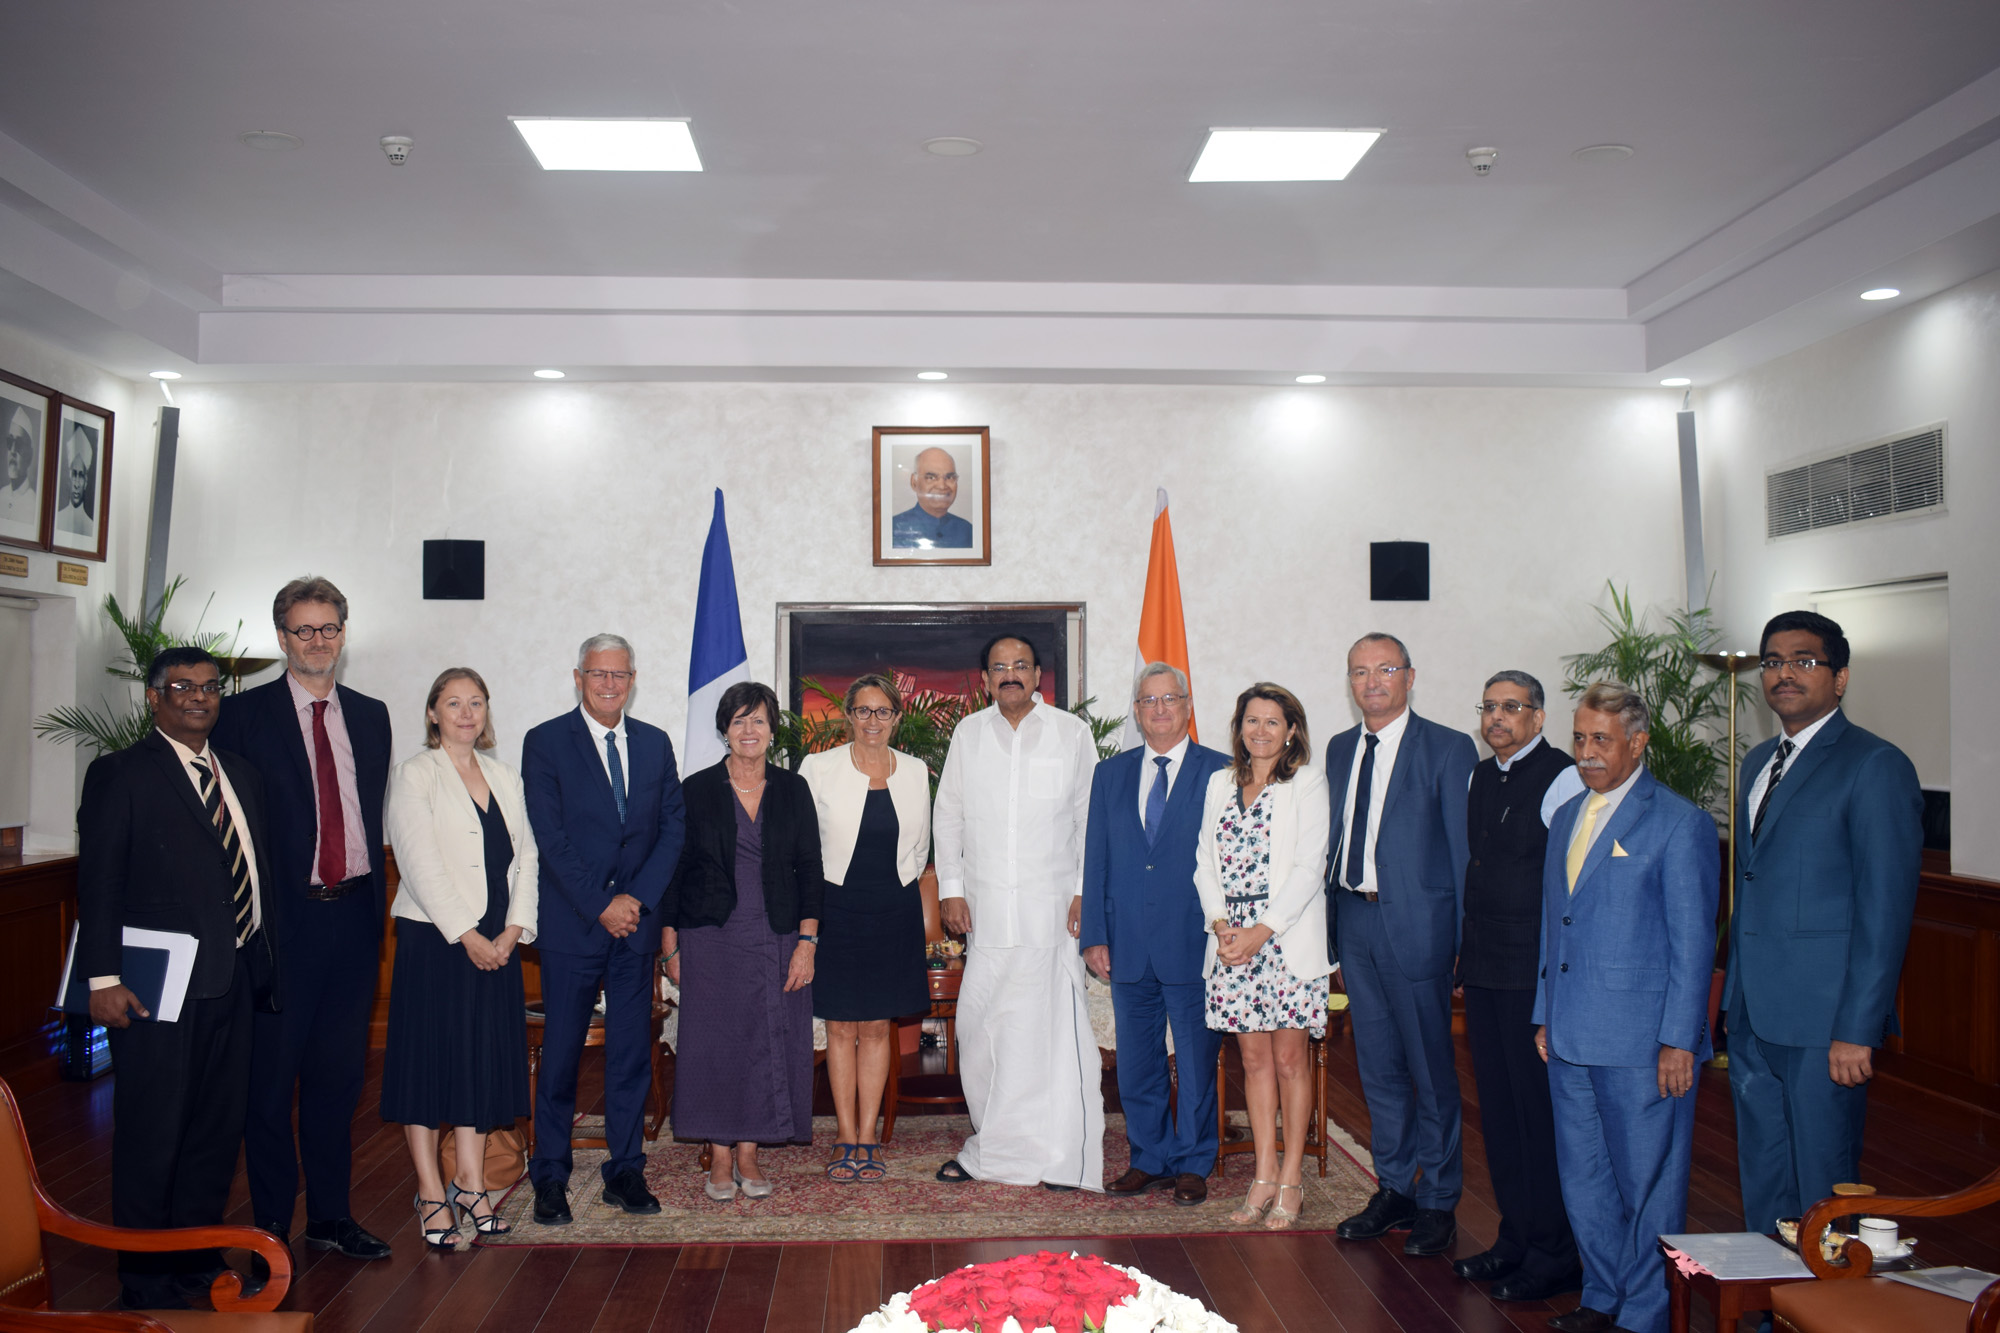 The Vice President, Shri M. Venkaiah Naidu with the delegation of French Parliamentarians led by Mrs. Sophie Primas, the Chair, Senate Standing Committee for Economic Affairs, in New Delhi on September 09, 2019.